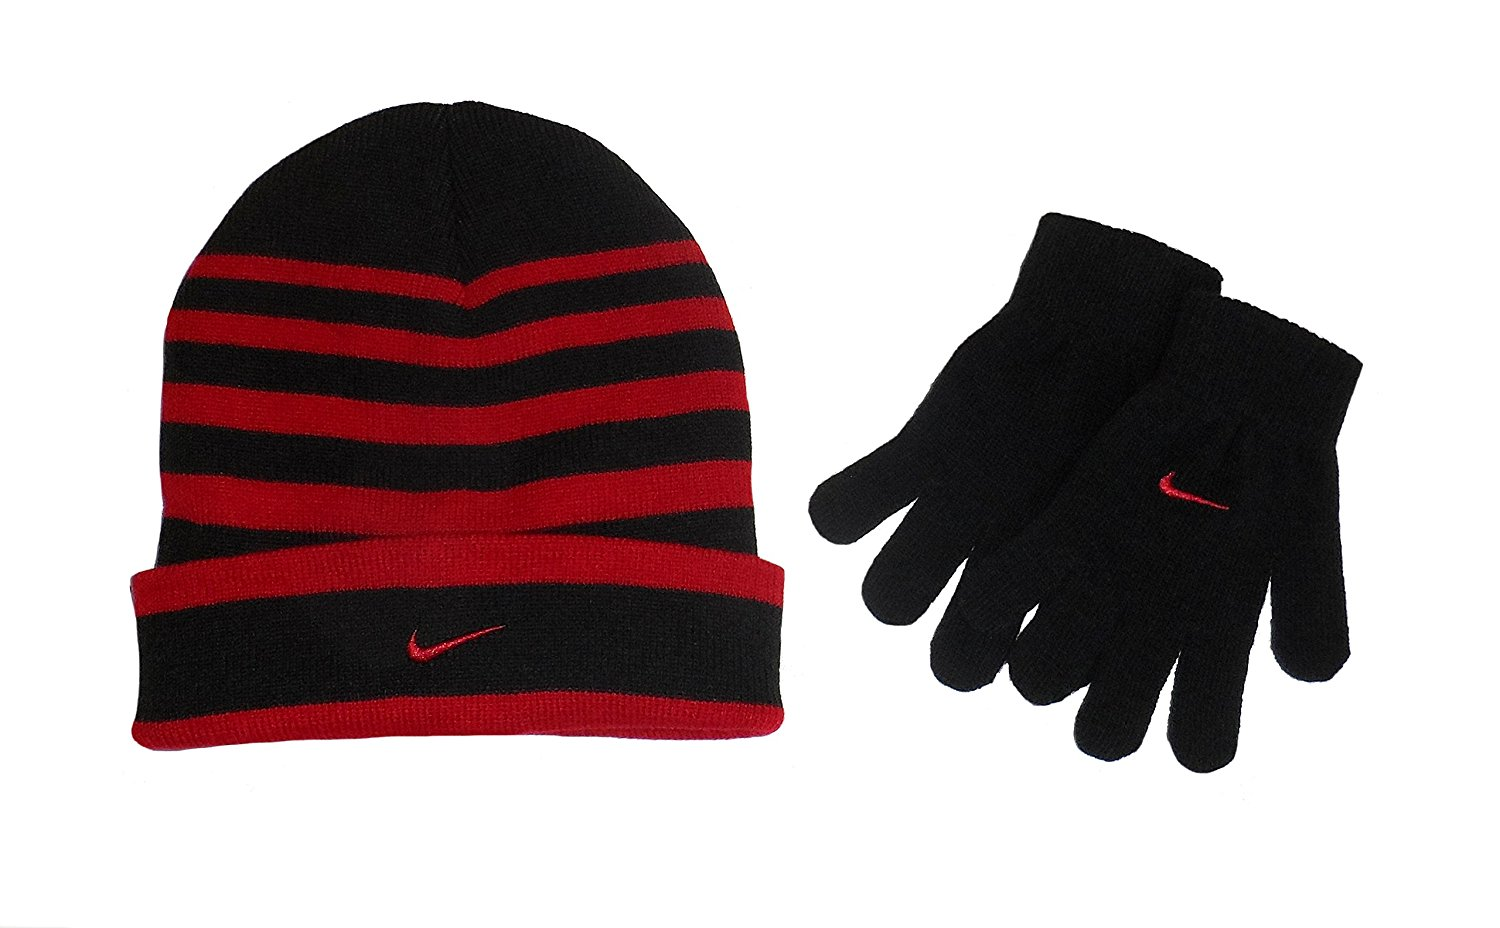 Nike - Nike Kids Teen Winter Striped Gloves   Beanie Hat Set - Walmart.com 9d7ec4c798c